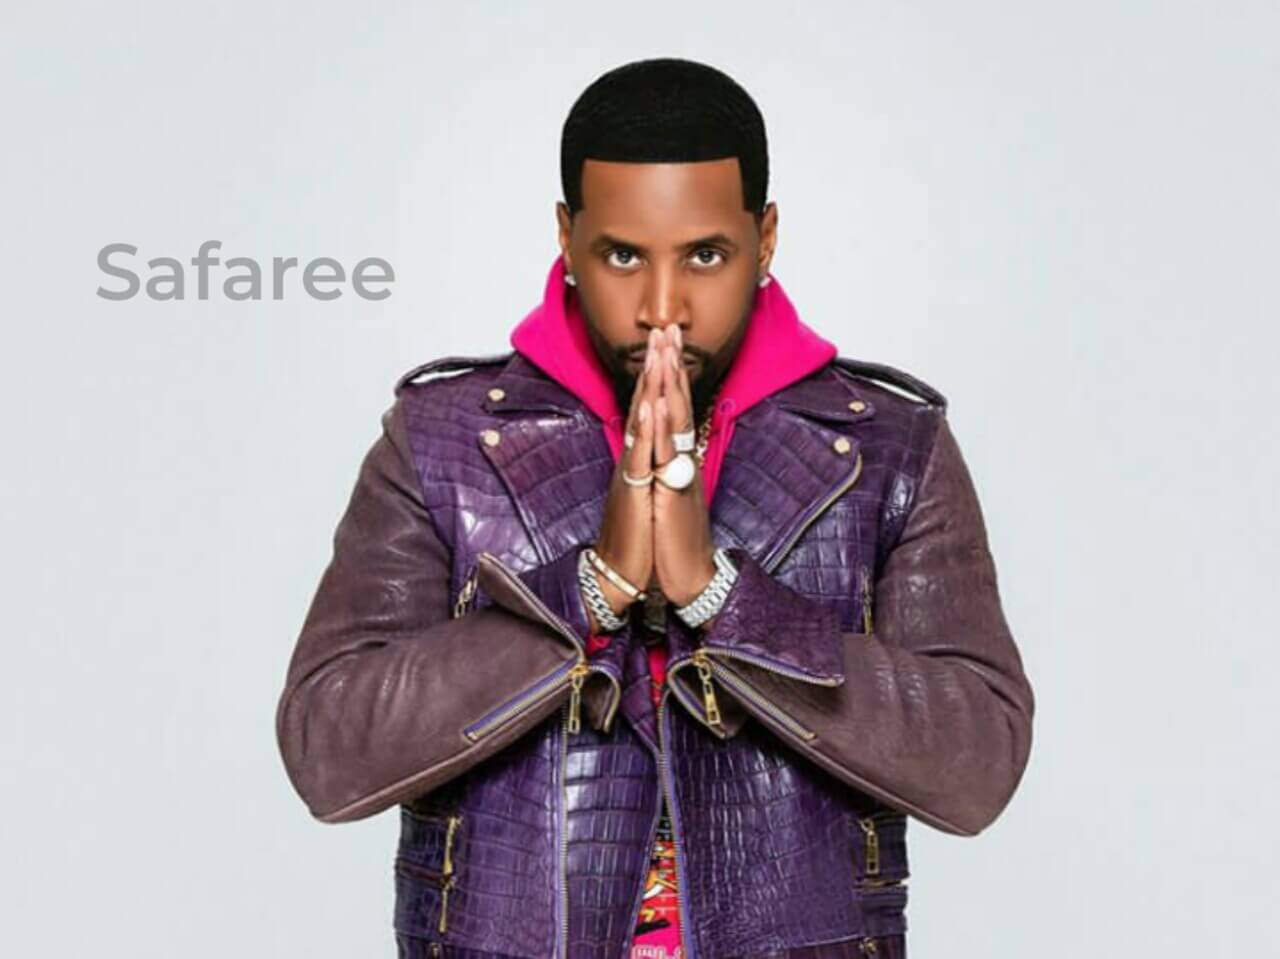 Safaree Triggers A Debate About Eating Disorders On Social Media